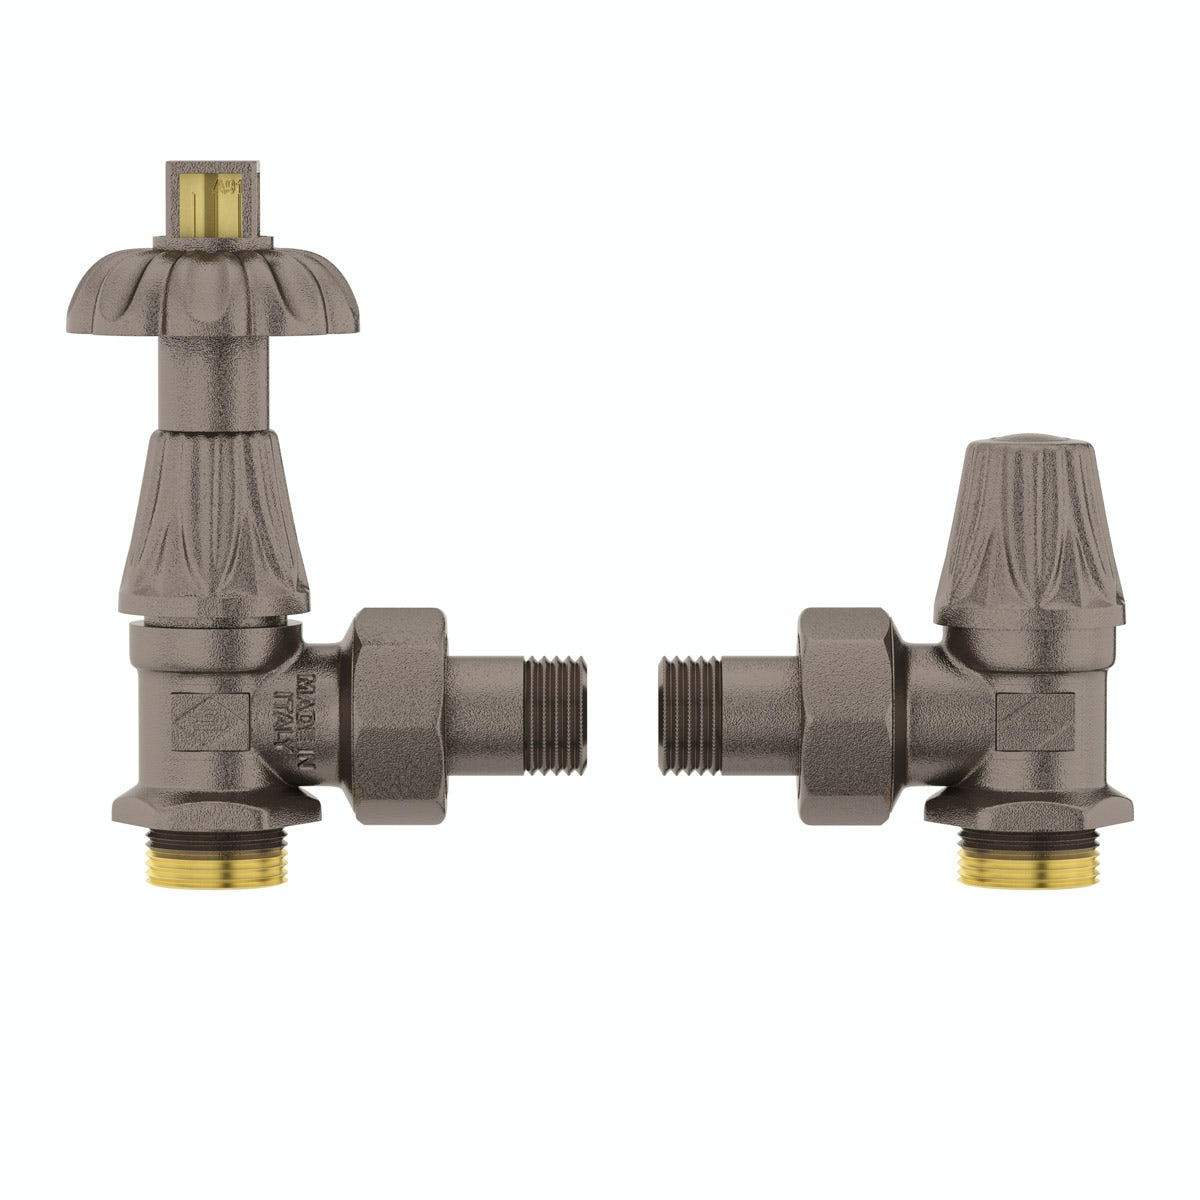 Oxford russet thermostatic radiator valves